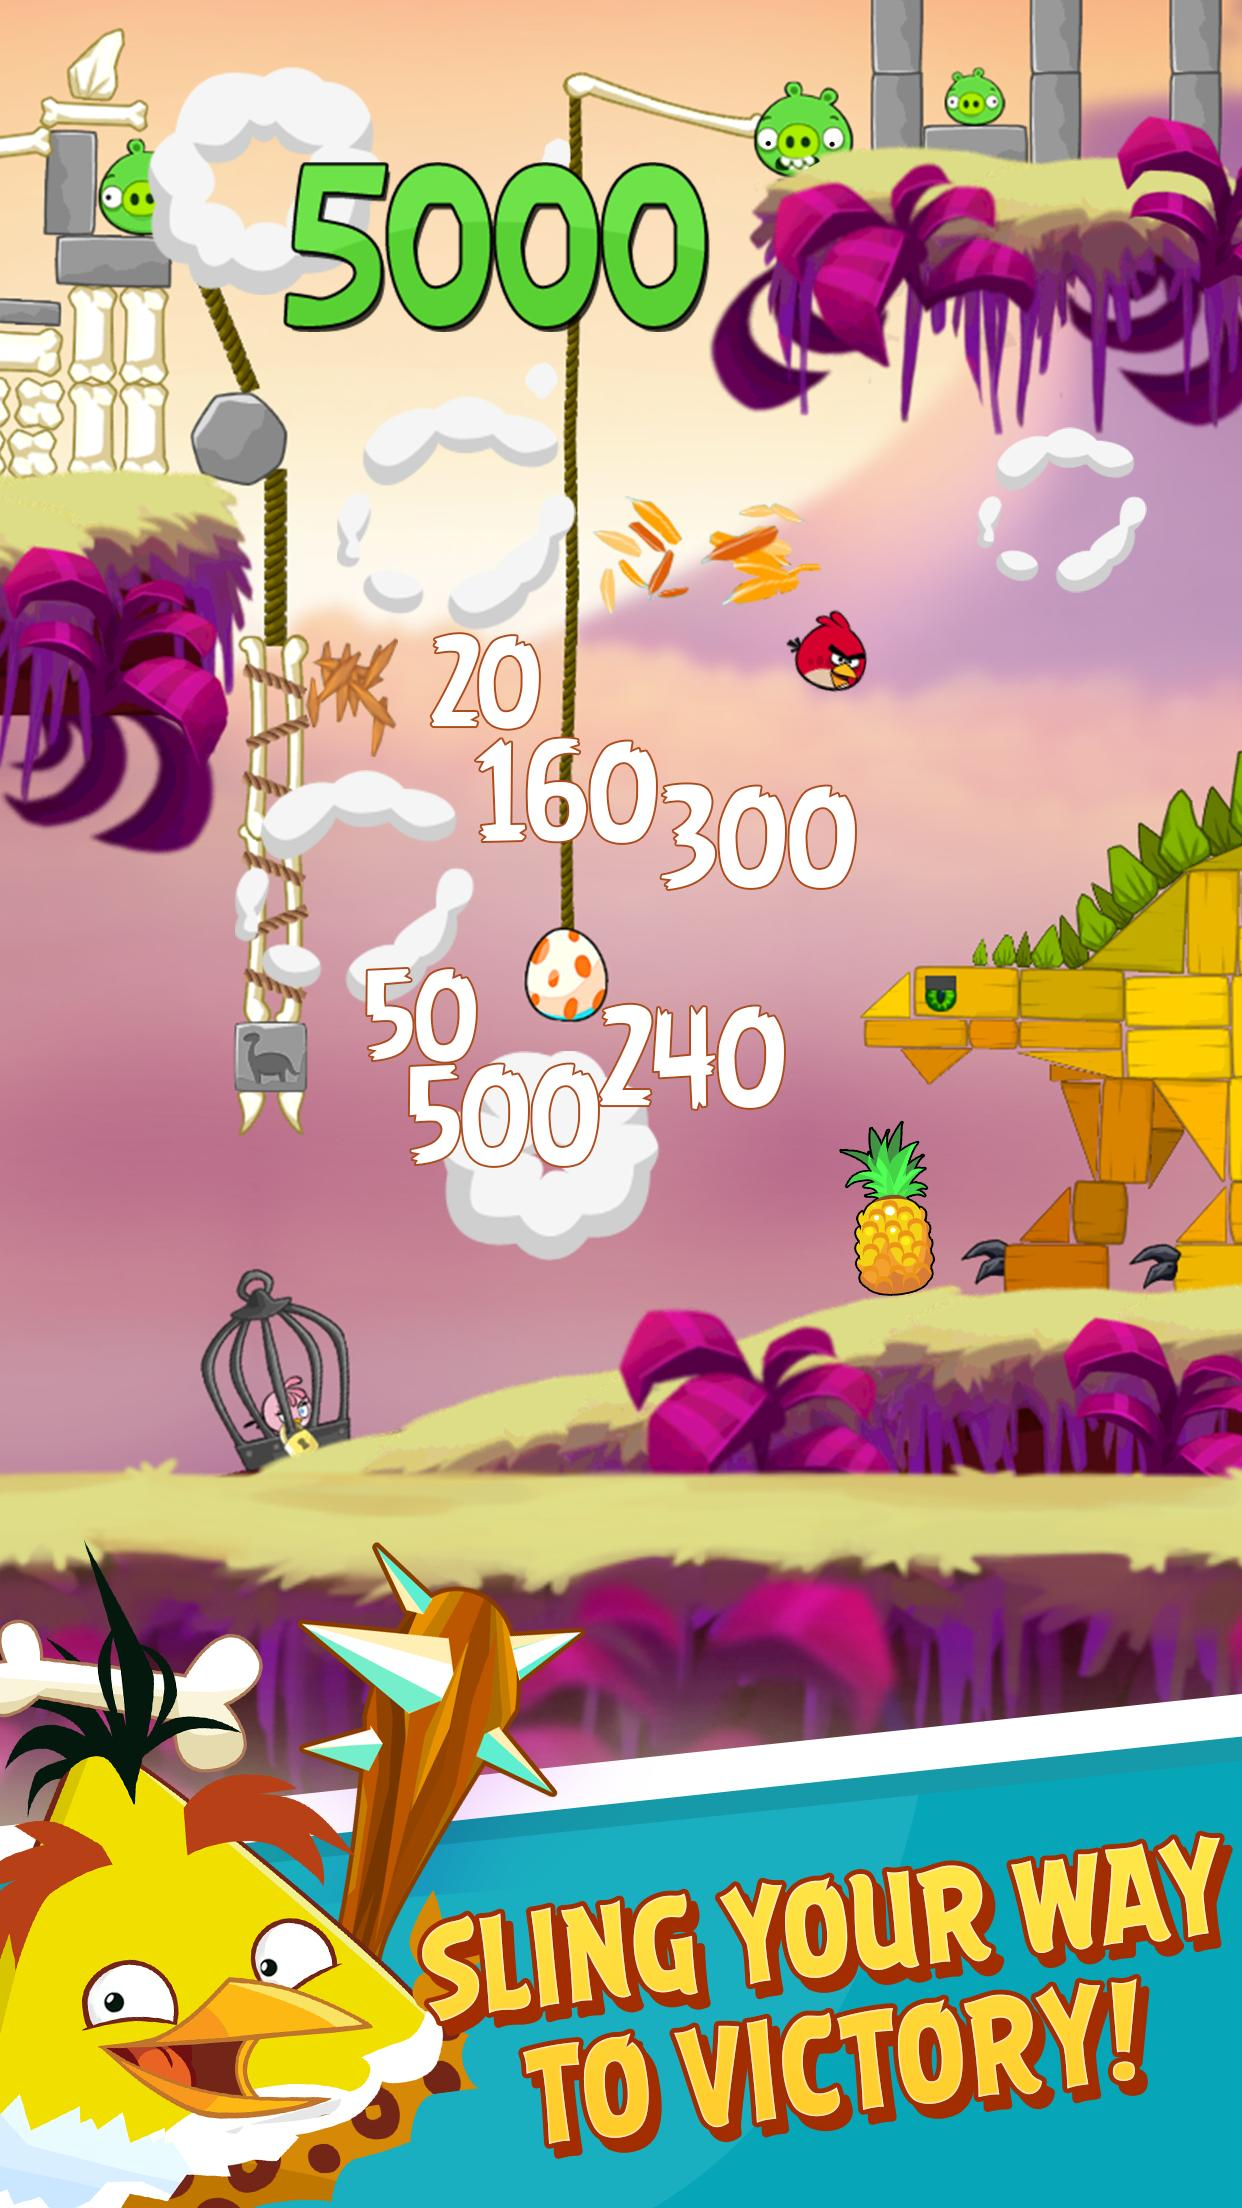 Angry Birds Classic 8.0.3 Screenshot 12